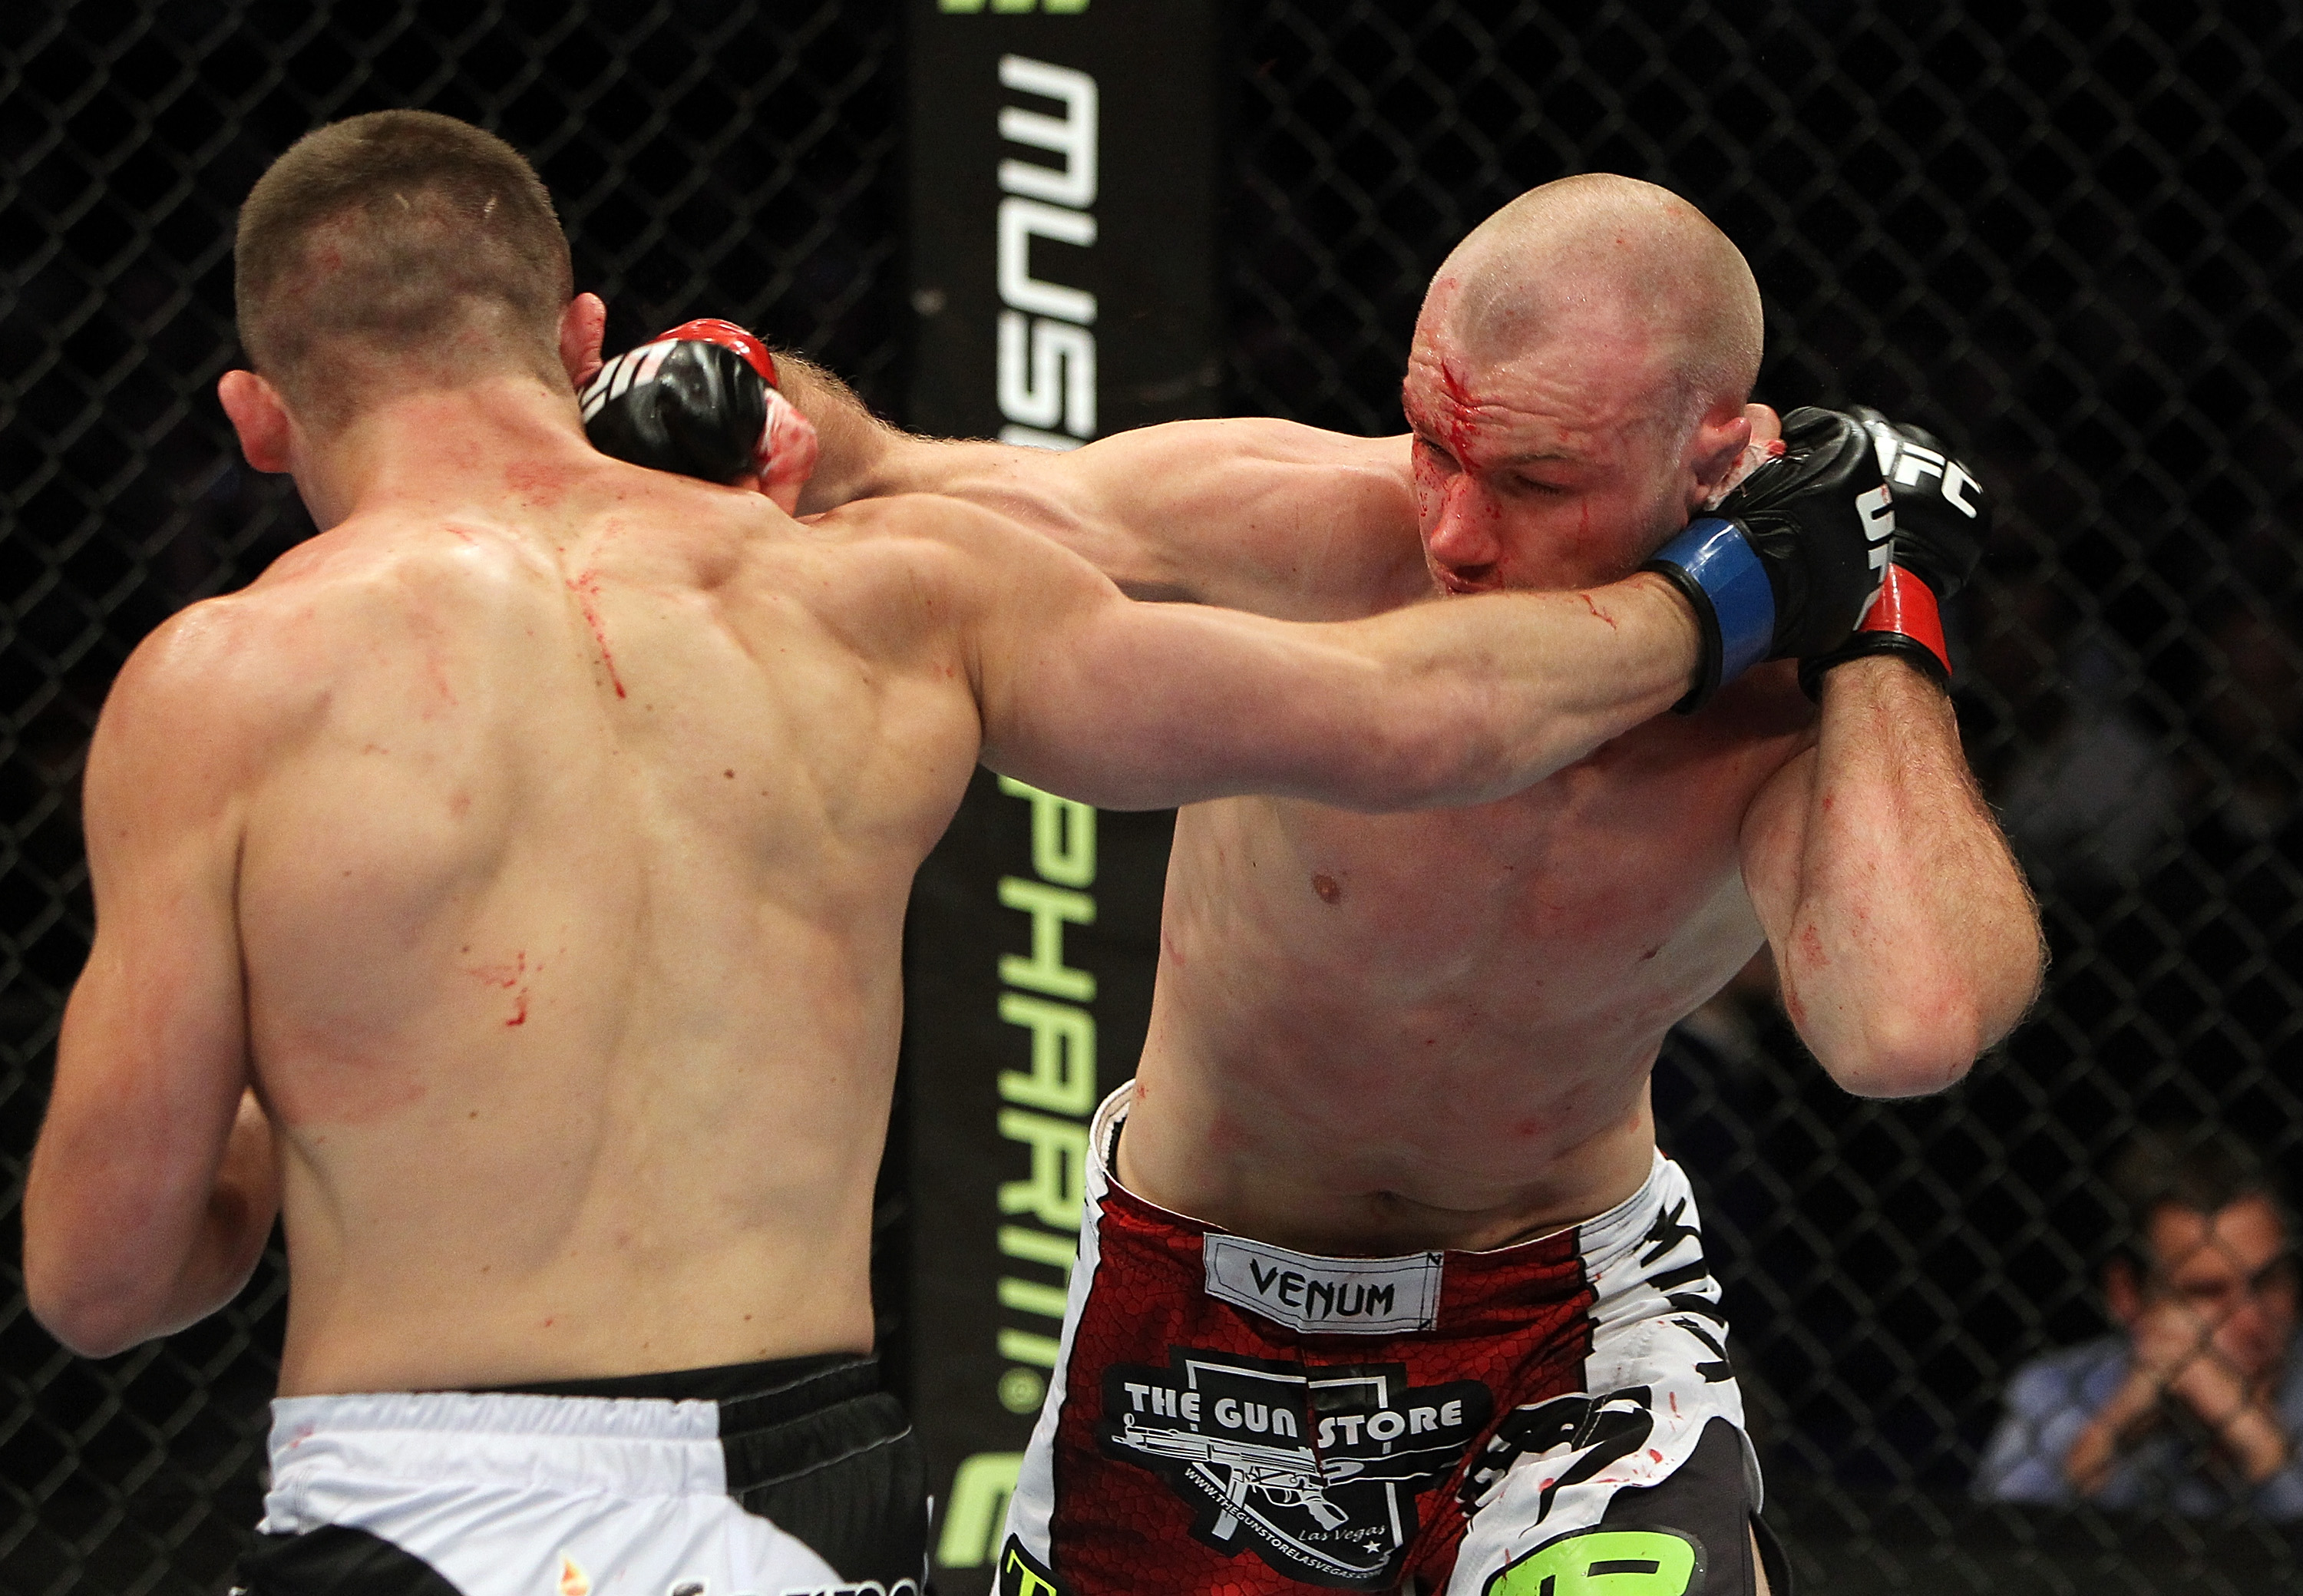 SAN JOSE, CA - NOVEMBER 19: Rick Story and Martin Kampmann exchange punches during an UFC Light Heavywieght bout at the HP Pavilion on November 19, 2011 in San Jose, California.  (Photo by Josh Hedges/Zuffa LLC/Zuffa LLC via Getty Images)